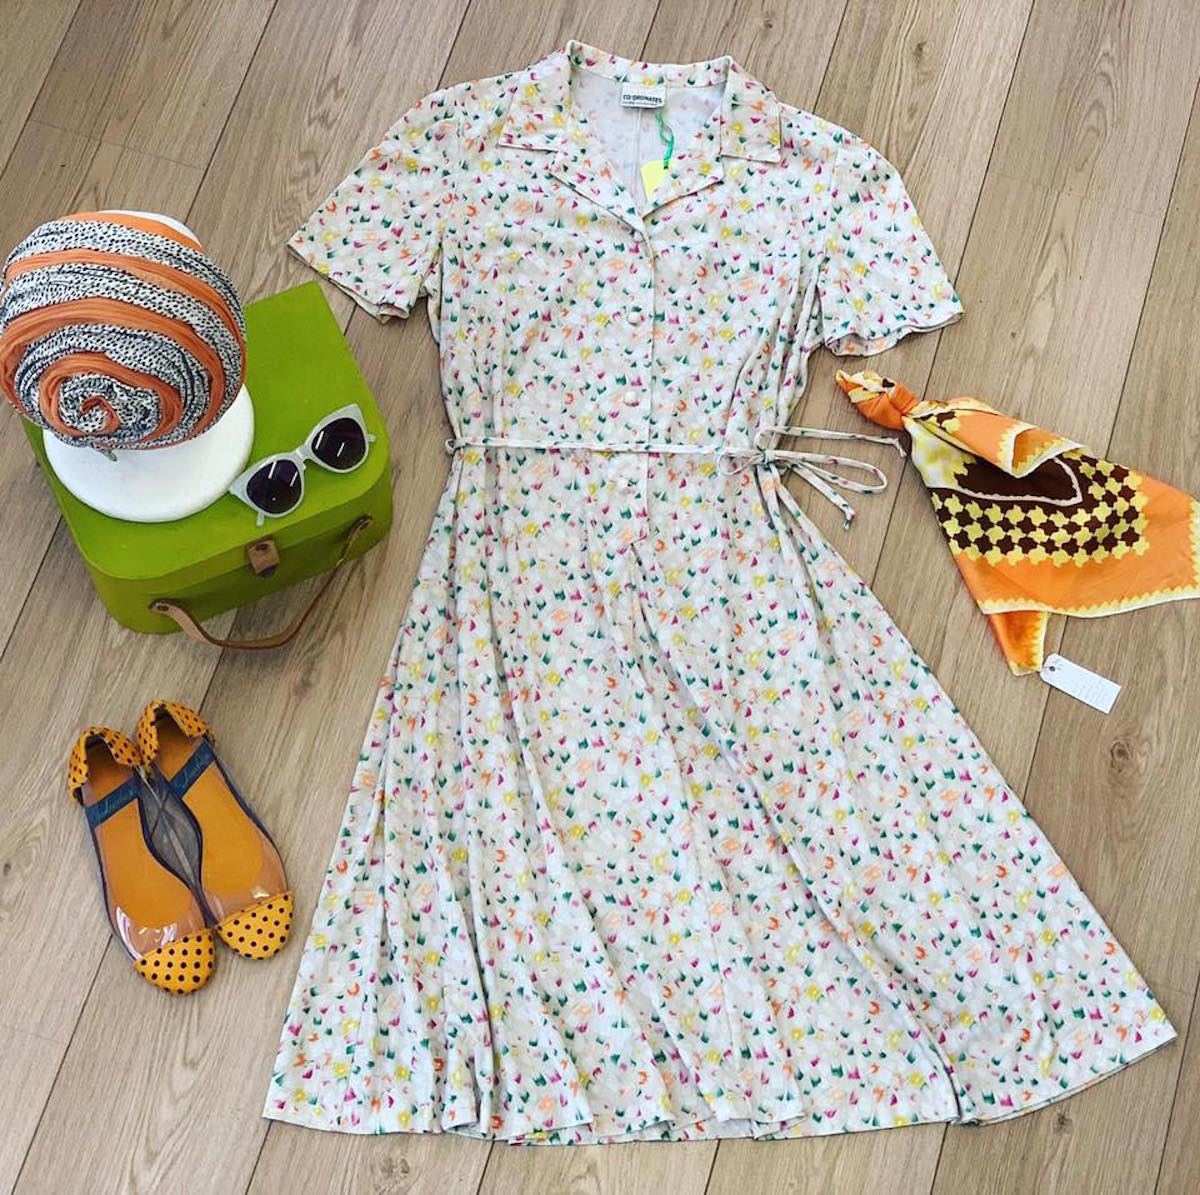 A polka dot dress with 60s sunglasses and kerchief